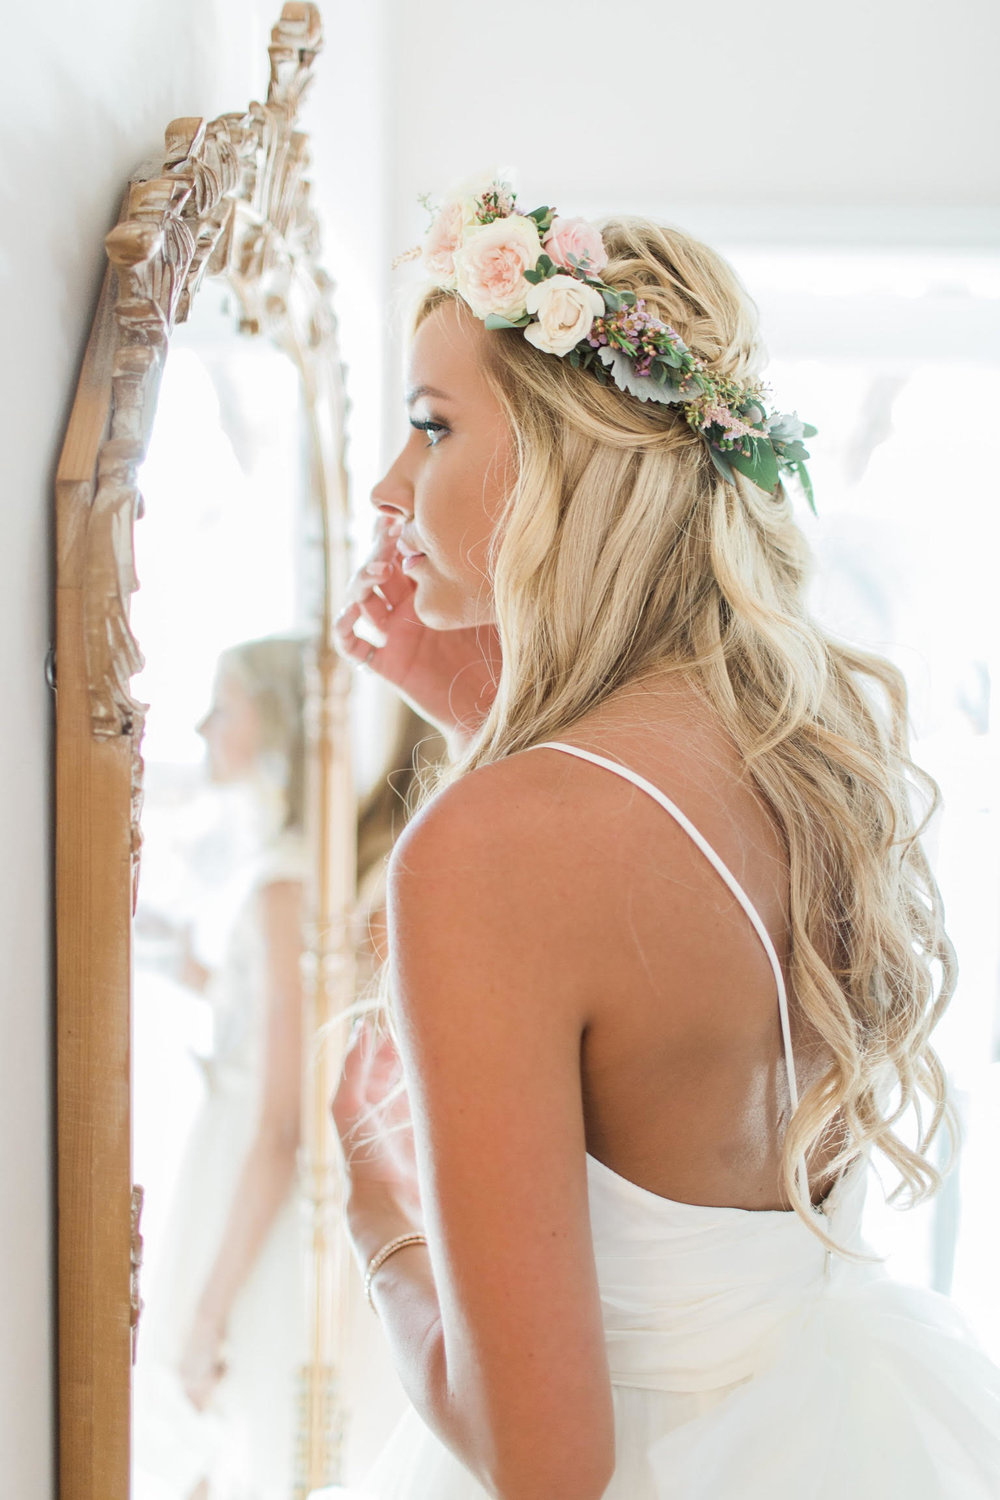 Orange_County_Laguna_Beach_Wedding_Hair_Makeup.jpg